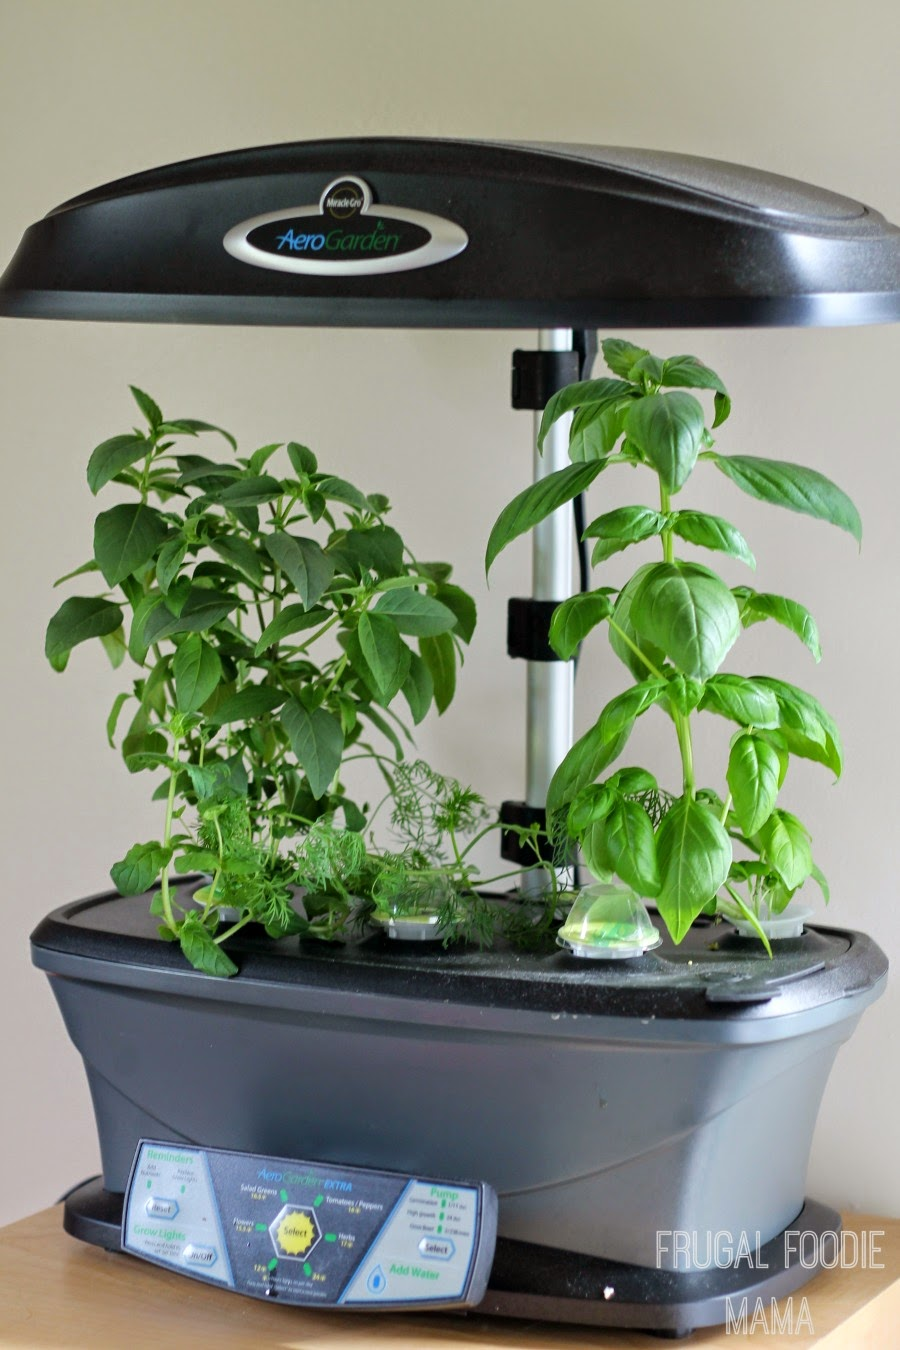 Frugal Foodie Mama Why You Need An AeroGarden The Winner of